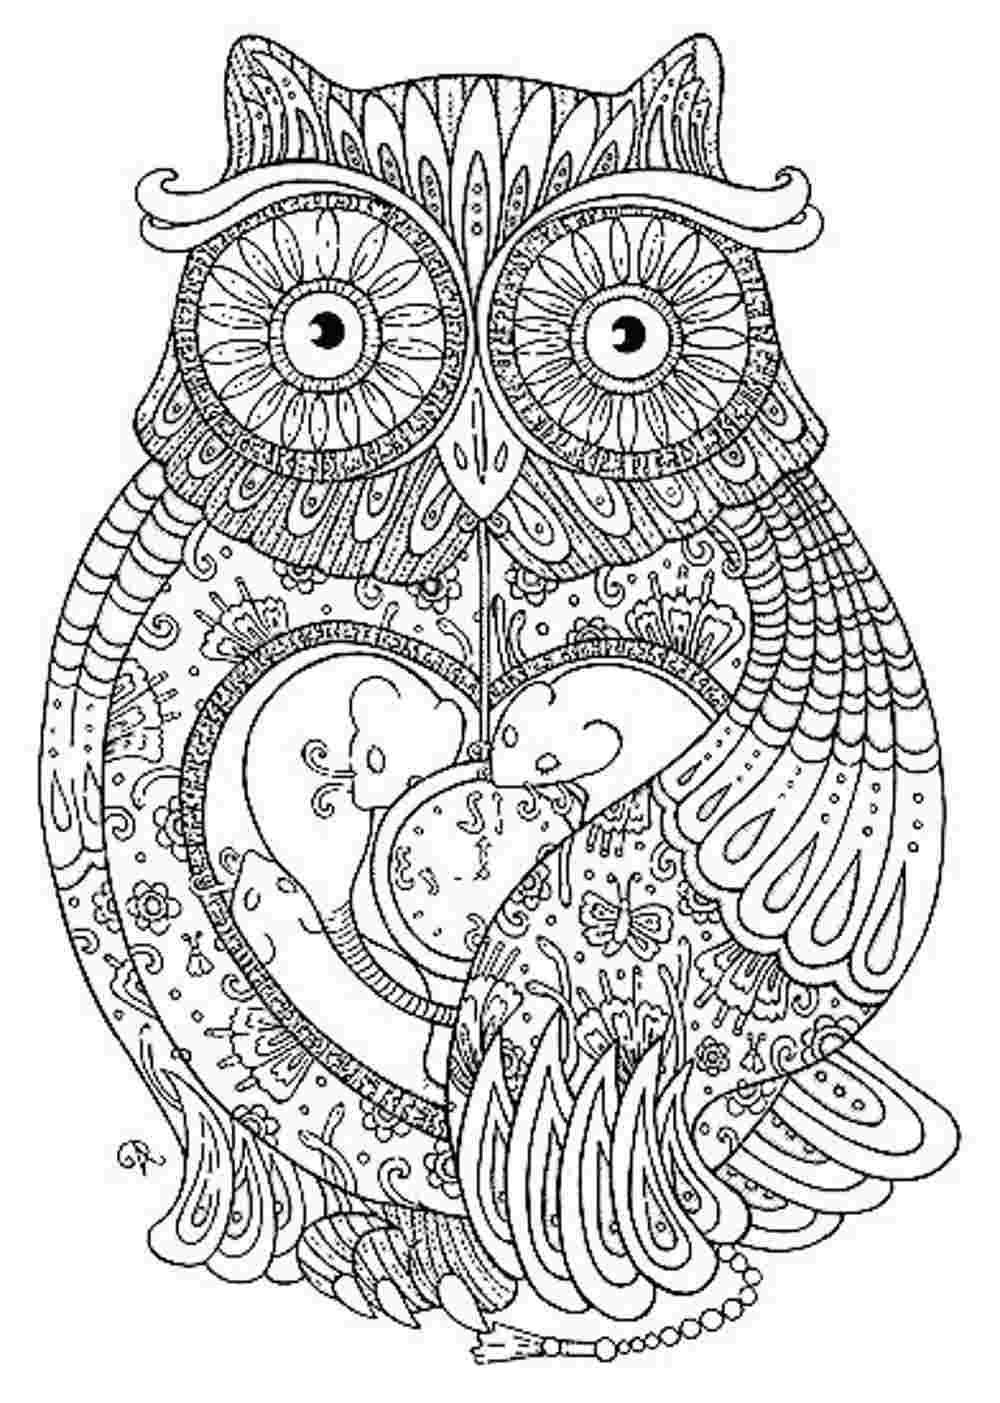 Co Colouring In Sheets Detailed - Http colorings co cool coloring pages of